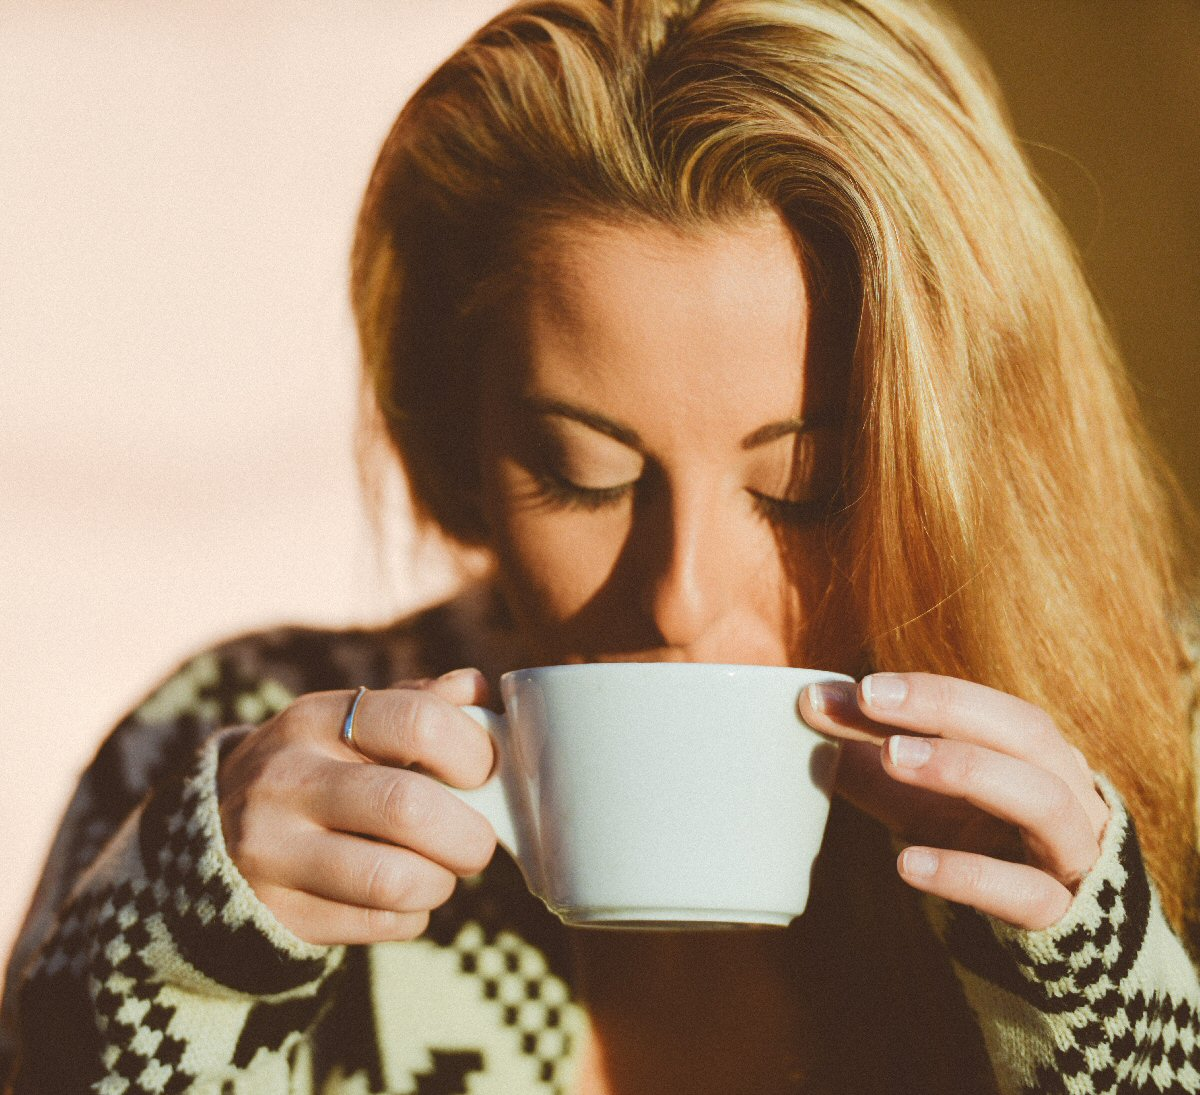 Tea Drinking - One of The Best Hobbies That Can Teach You Patience & Goodwill